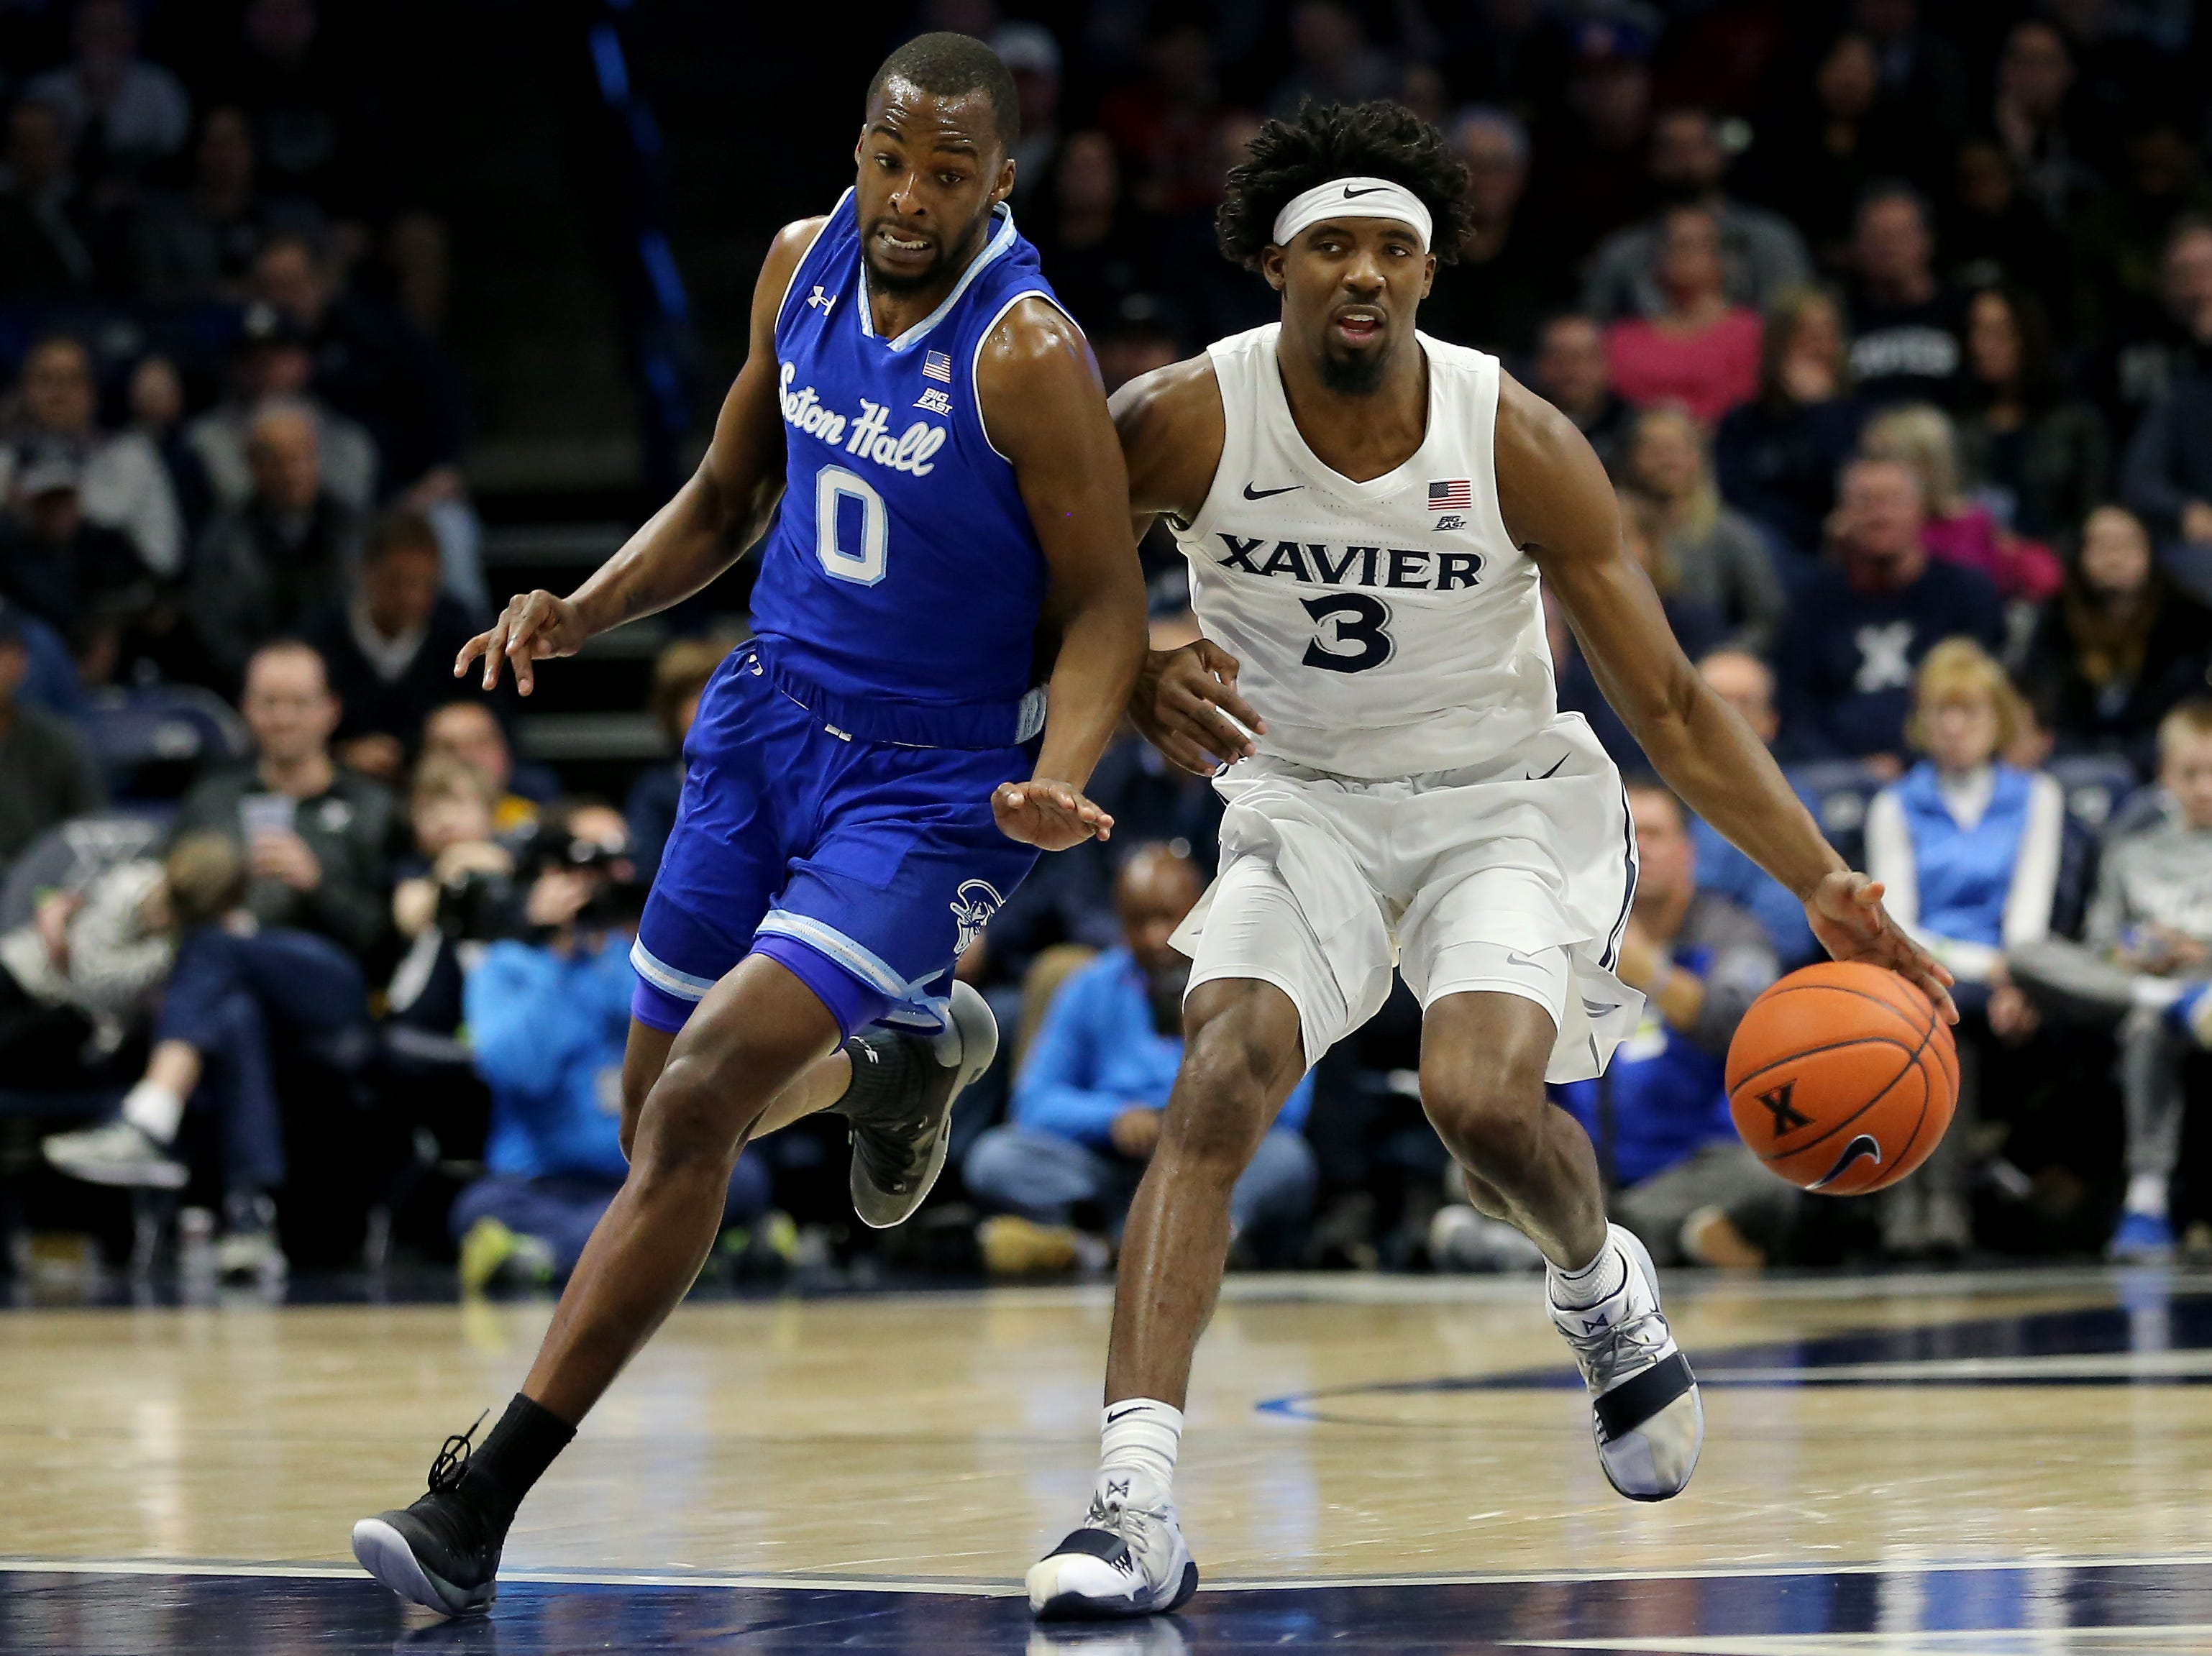 Xavier Musketeers guard Quentin Goodin (3) brings the ball up the court as Seton Hall Pirates guard Quincy McKnight (0) defends in the first half of an NCAA college basketball game, Wednesday, Jan. 2, 2019, at the Cintas Center in Cincinnati.